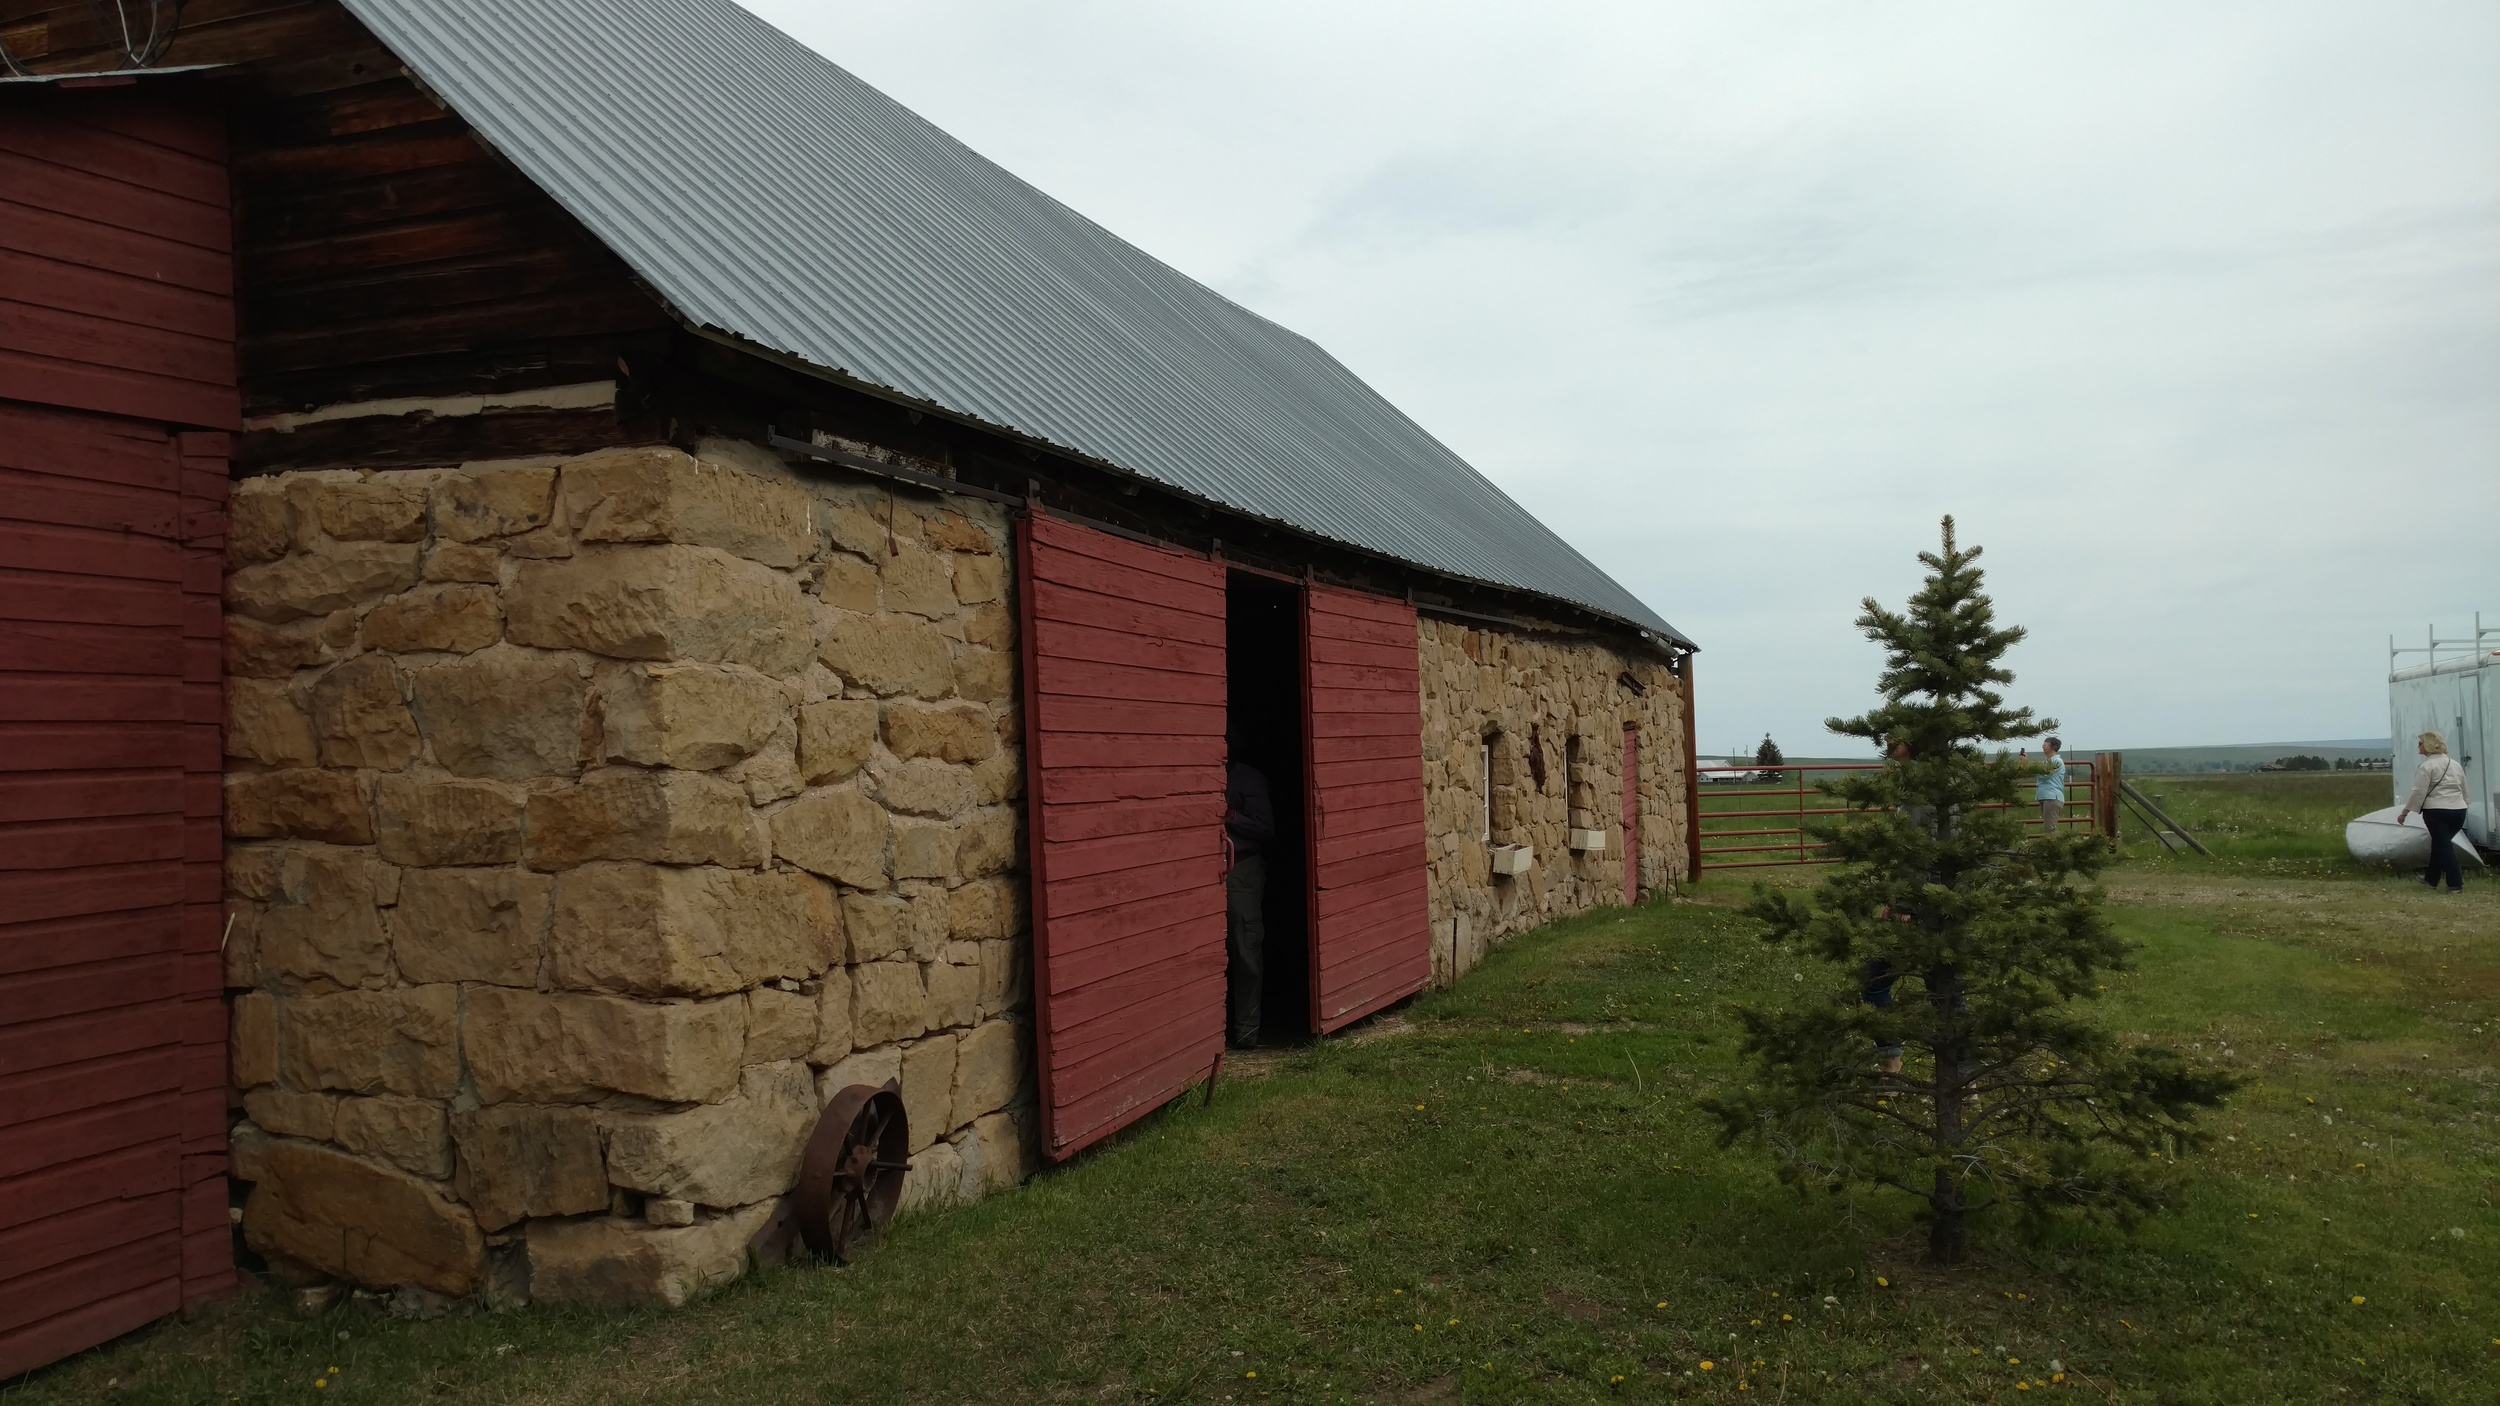 The Kero Farmstead is an excellent intact example of an early area farmstead built by Finnish immigrants.